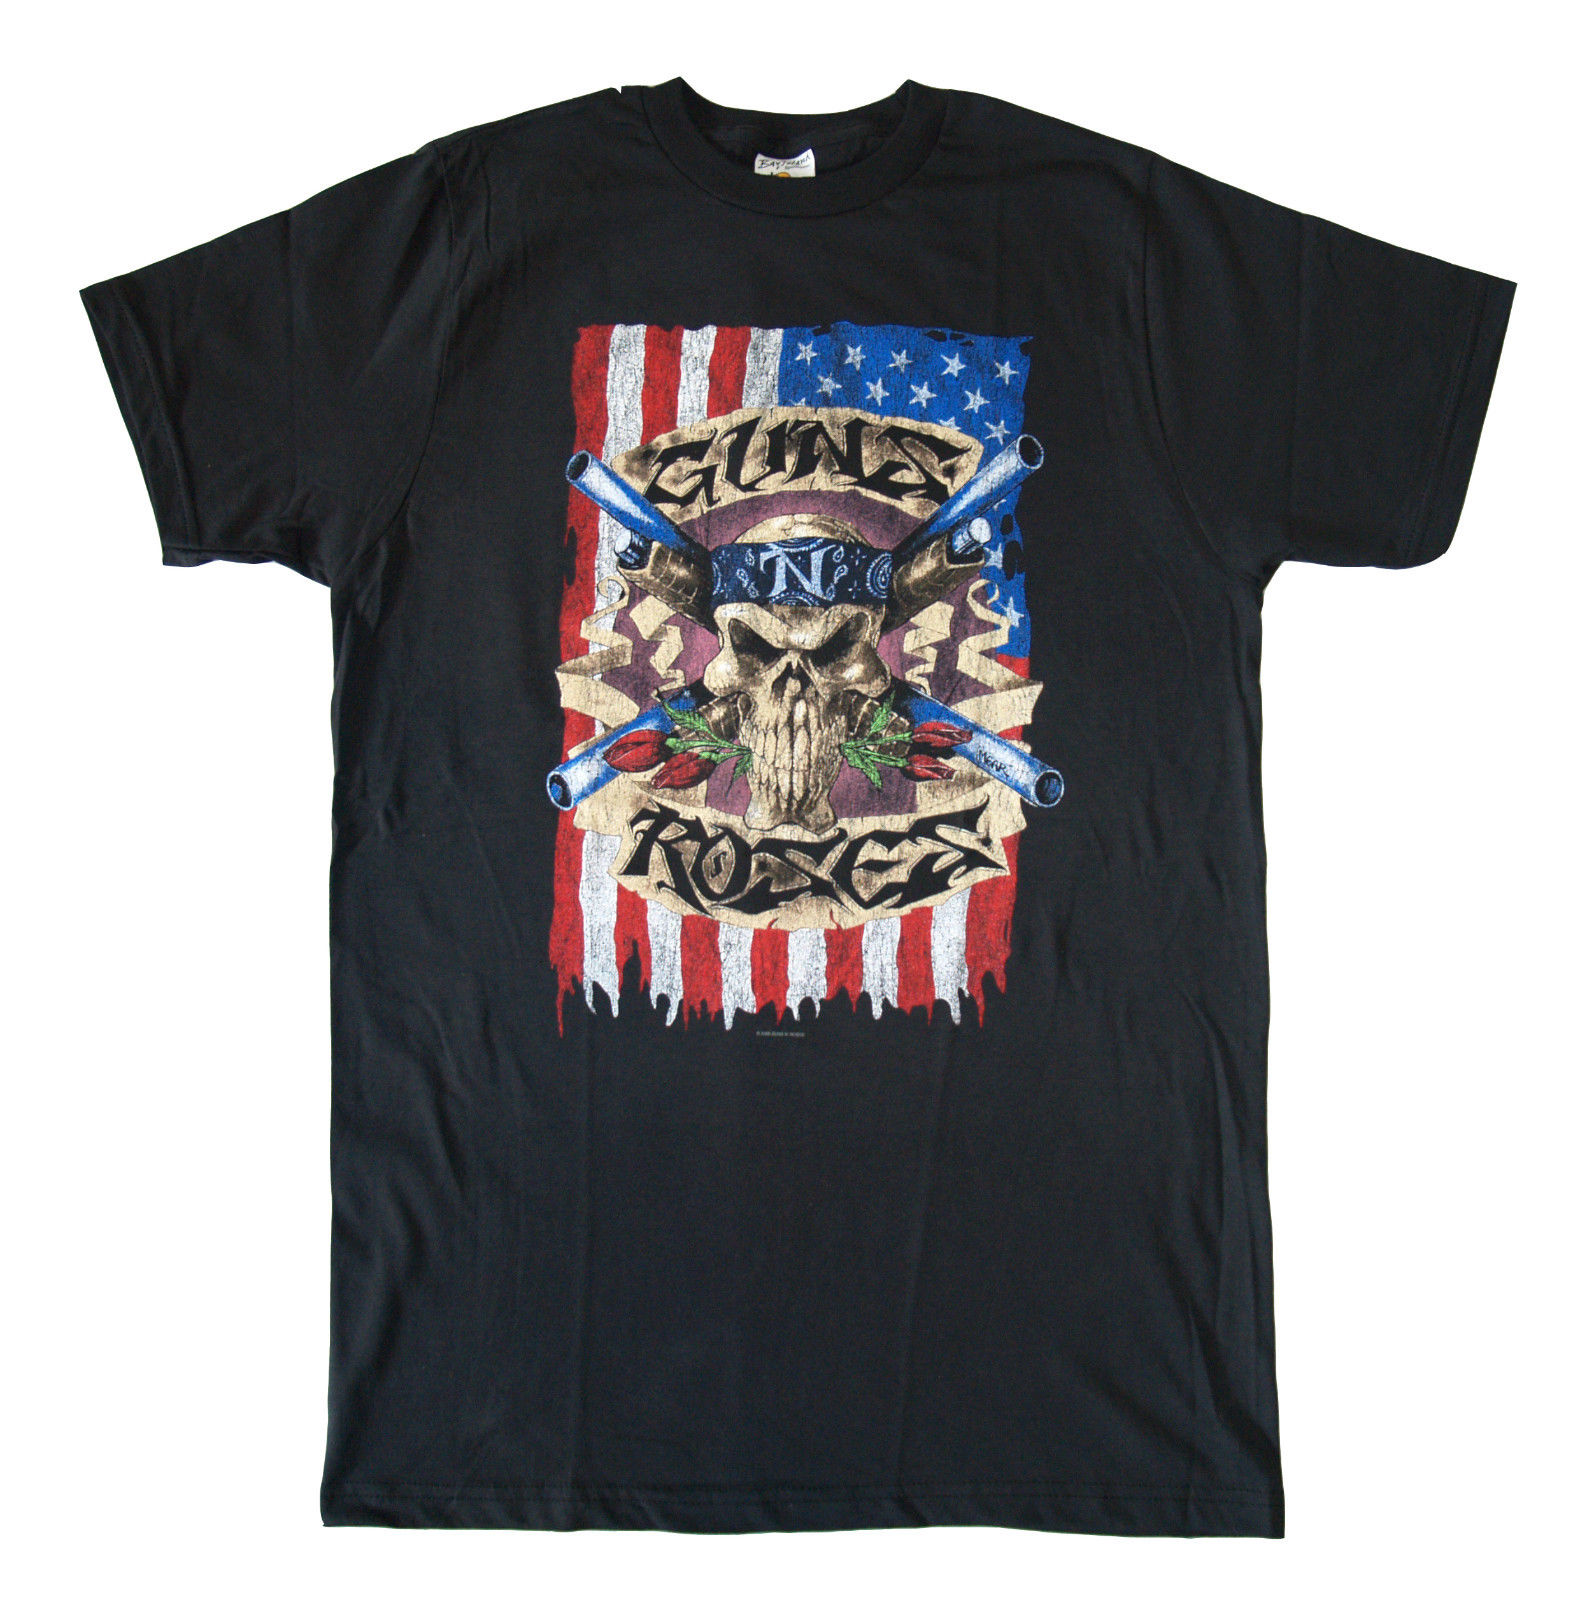 GUNS N ROSES - Vintage Skull Guns - T SHIRT S-M-L-XL-2XL Brand New Official